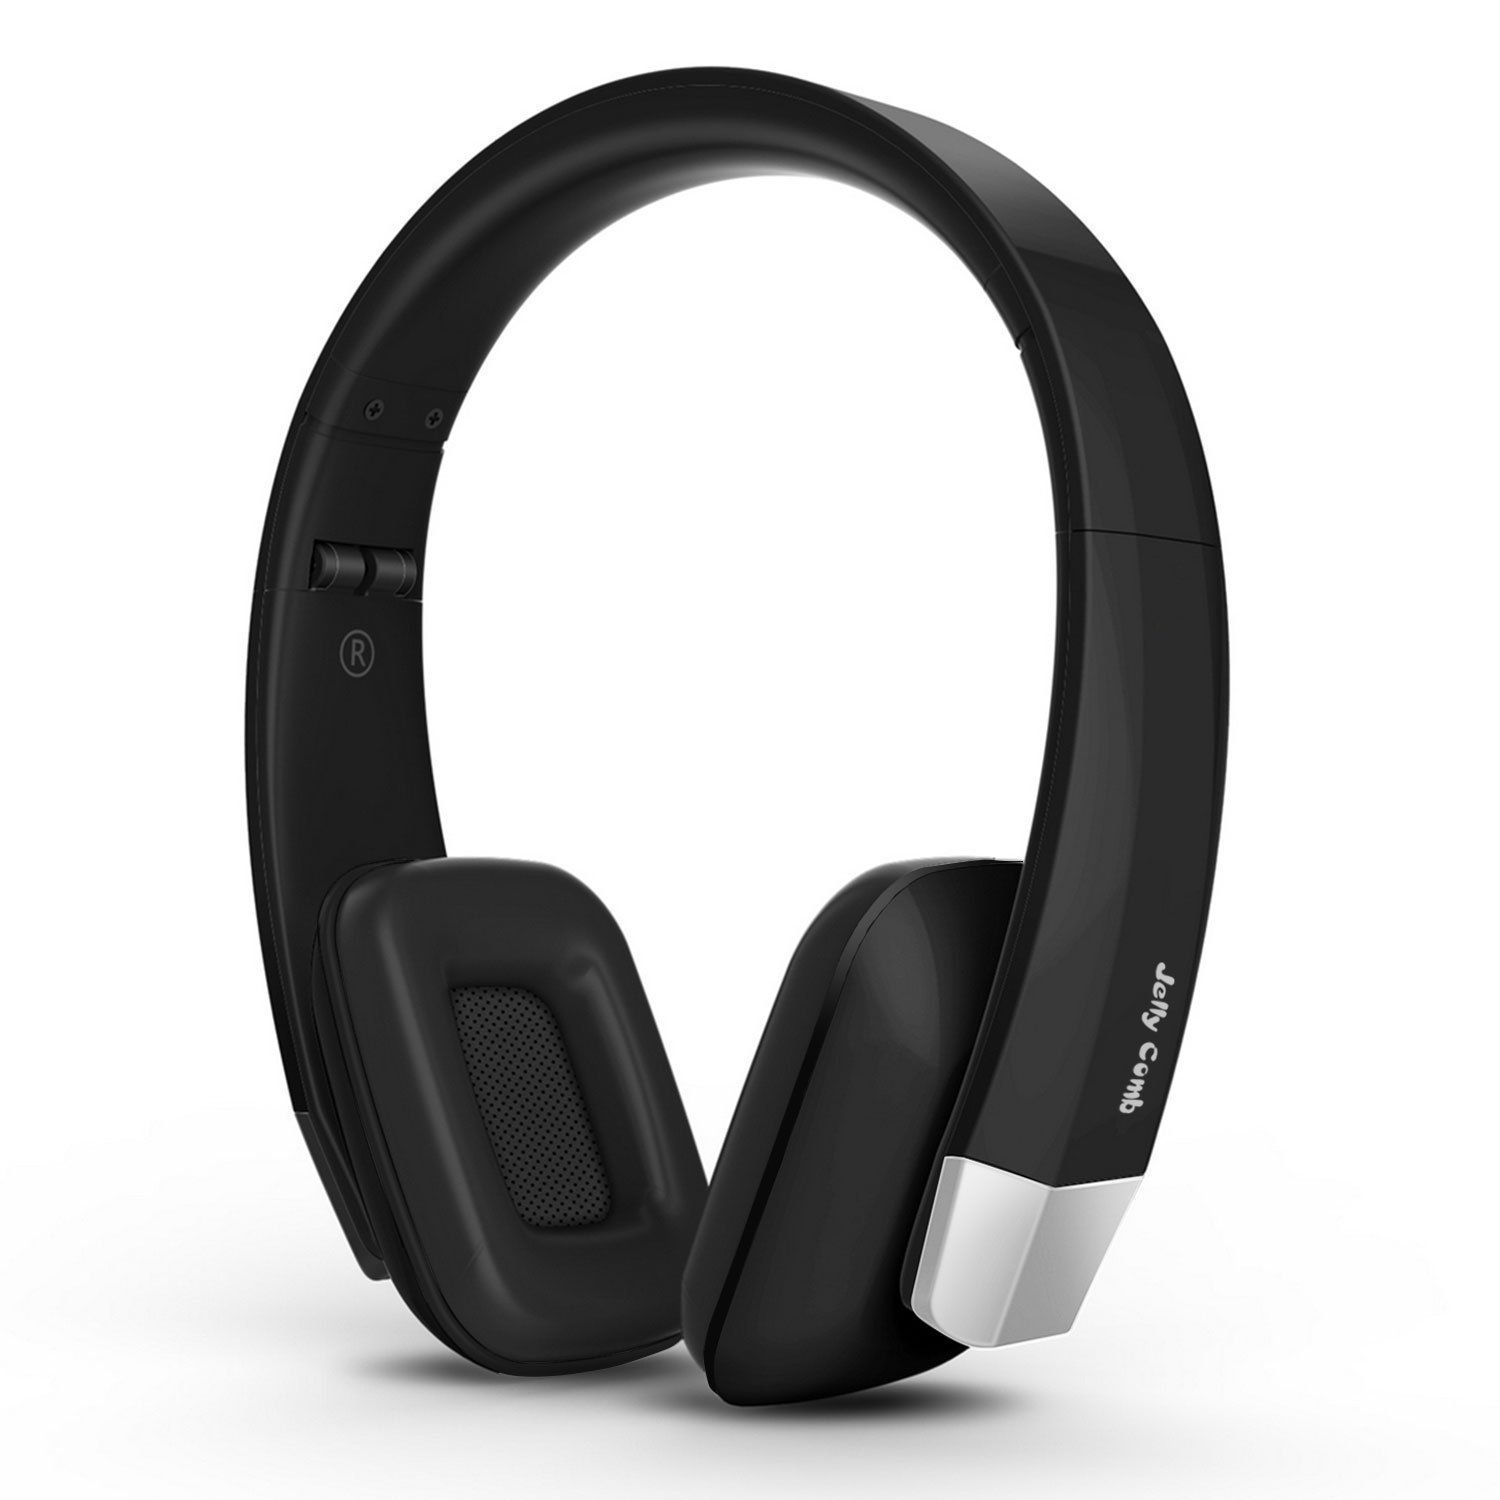 3805b21aa8c Today we're looking at the £25 Jelly Comb Wireless TV headphones. These headphones  connect to any 3.5mm or stereo phono source via a low-latency wireless ...